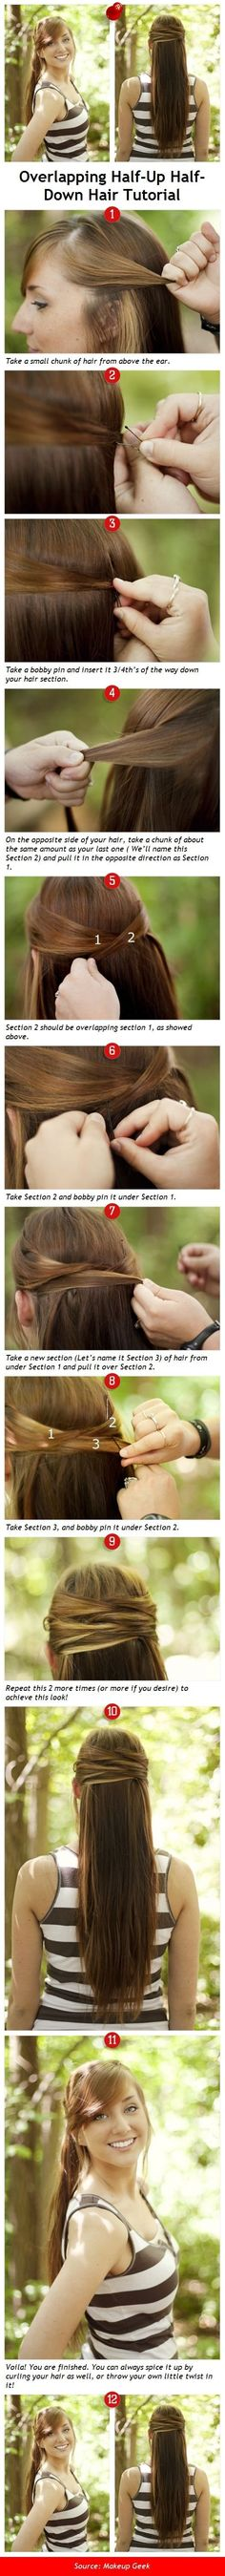 Overlapping Half-Up Down Hair Tutorial